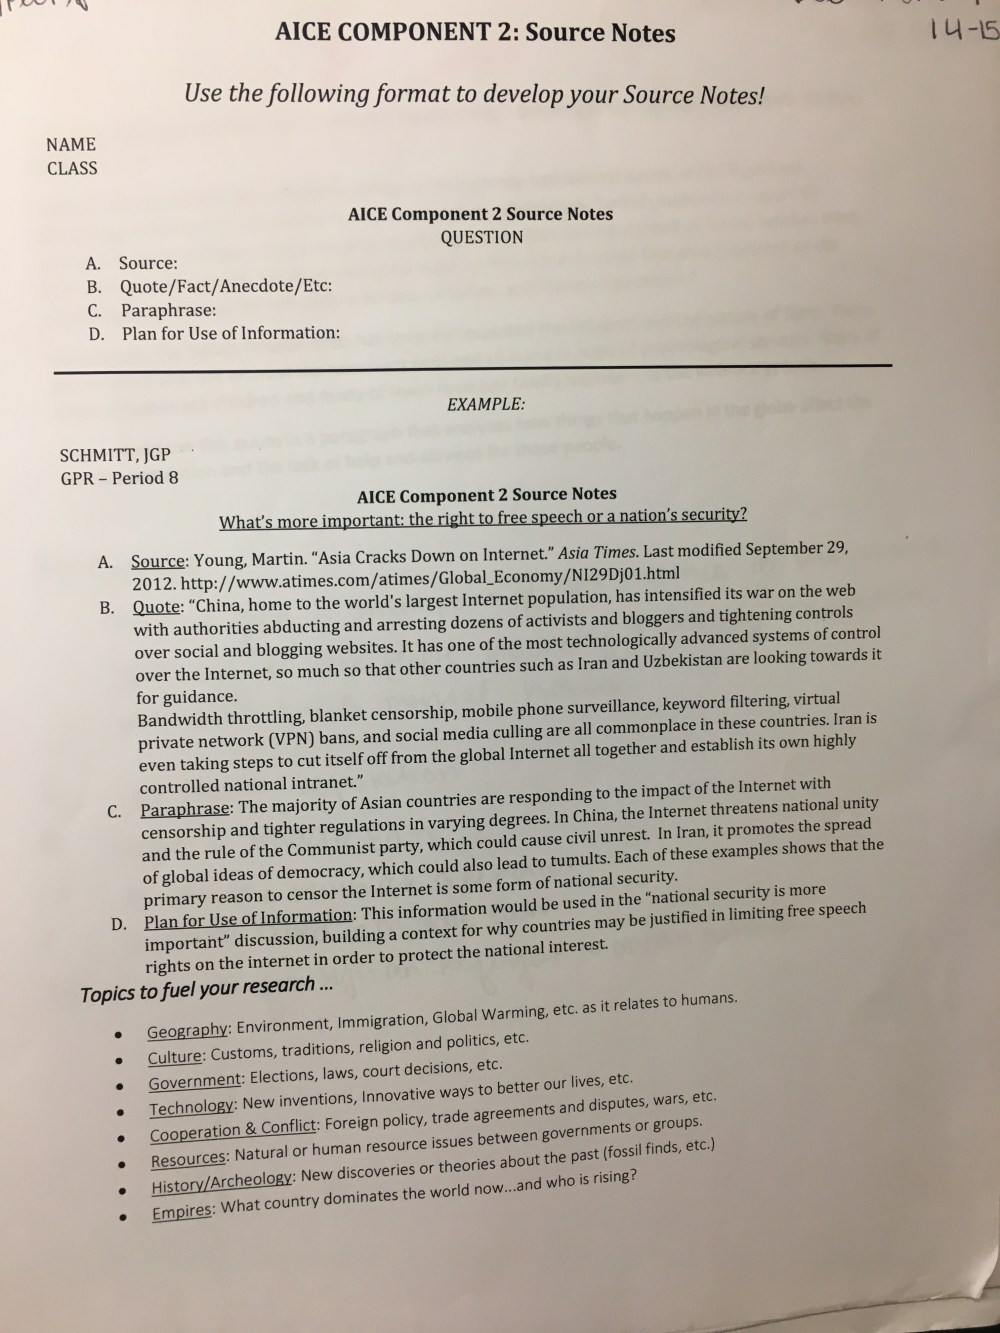 Apa Format College Papers For Sale Defiantly Dediserve VPS Country